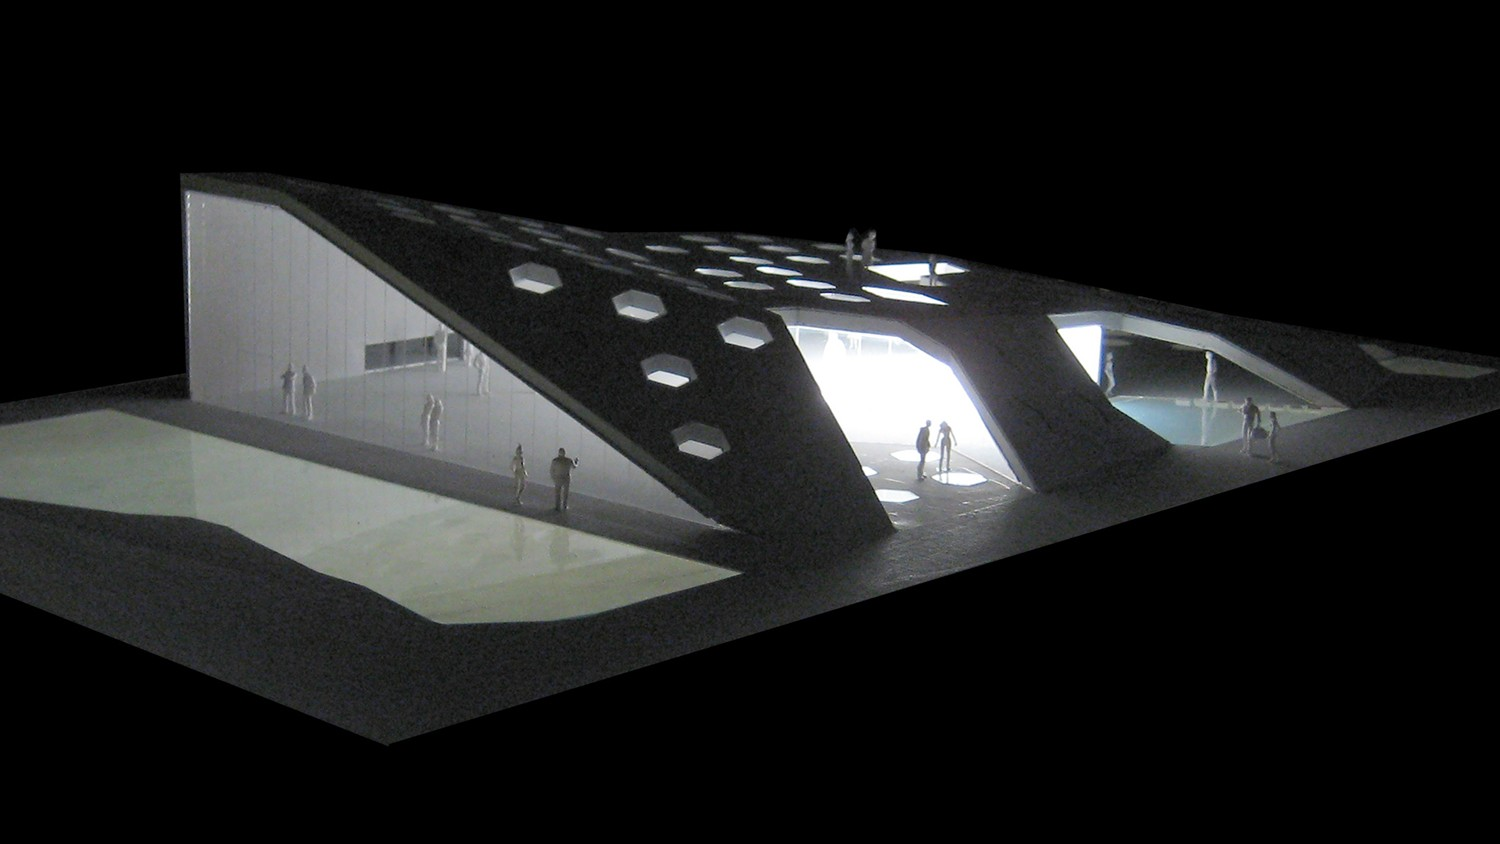 https://stevenholl.sfo2.digitaloceanspaces.com/uploads/projects/project-images/StevenHollArchitects_HangzhouTriax_IMG_5512_WH.jpg